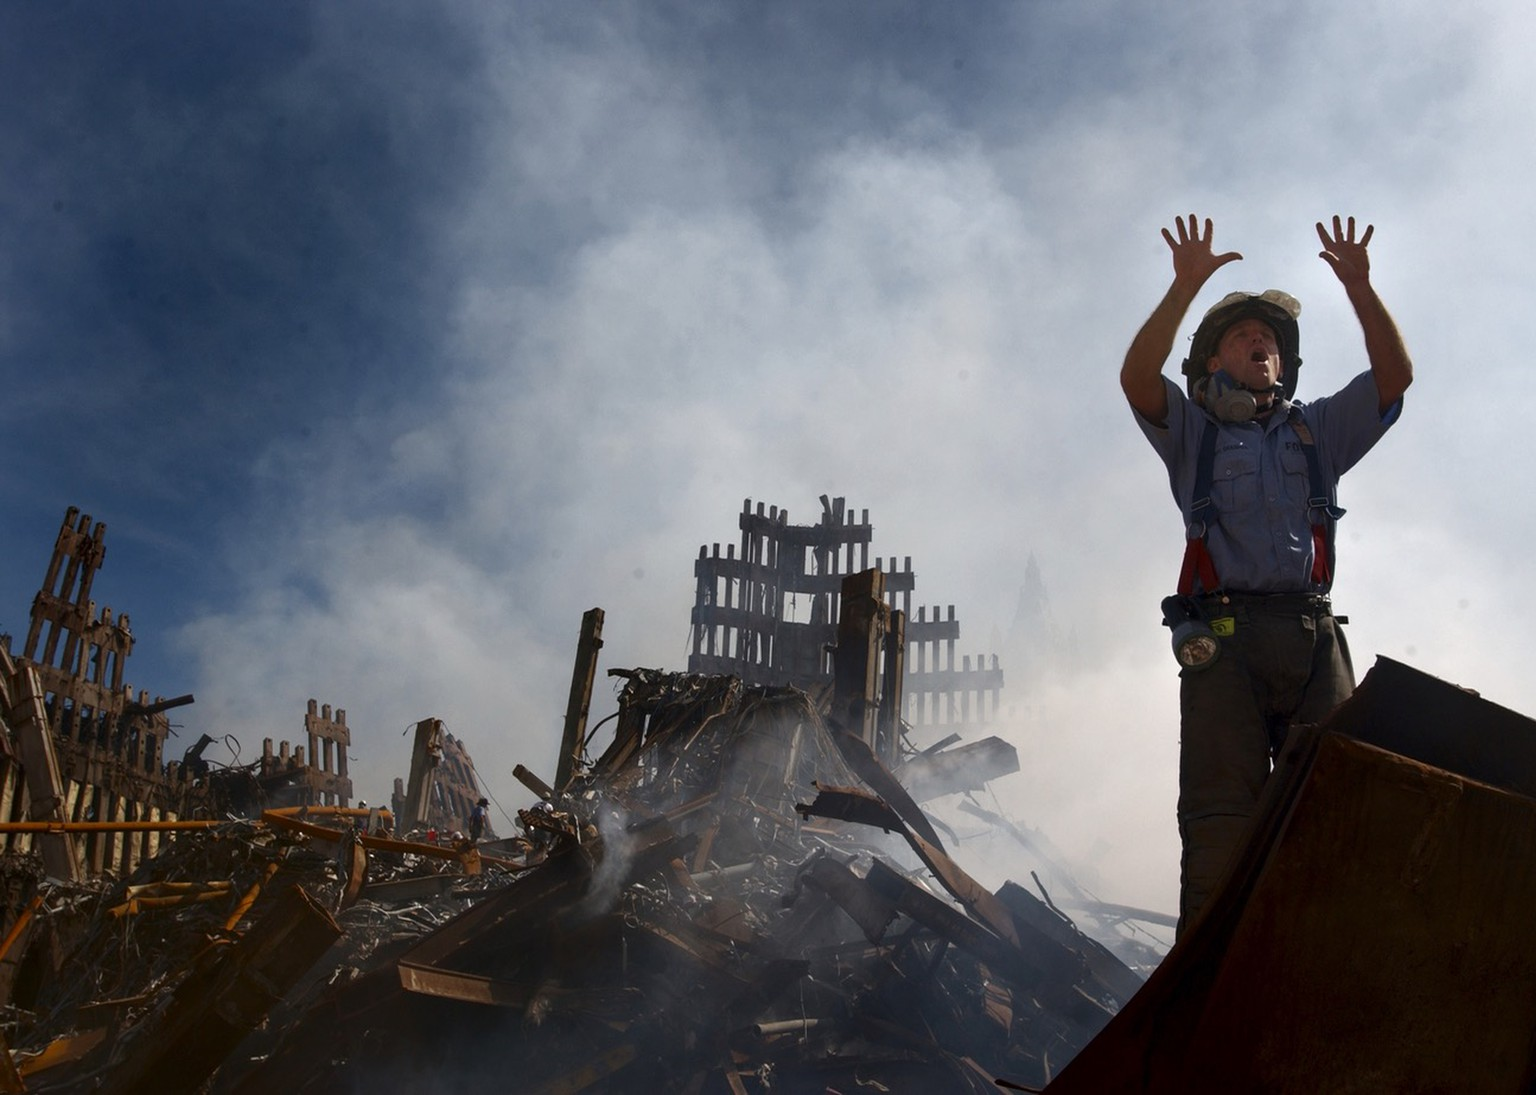 A New York City fireman calls for 10 more rescue workers to make their way into the rubble of the World Trade Center, Saturday September 15, 2001. (KEYSTONE/AP Photos/U.S. Navy/Preston Keres)